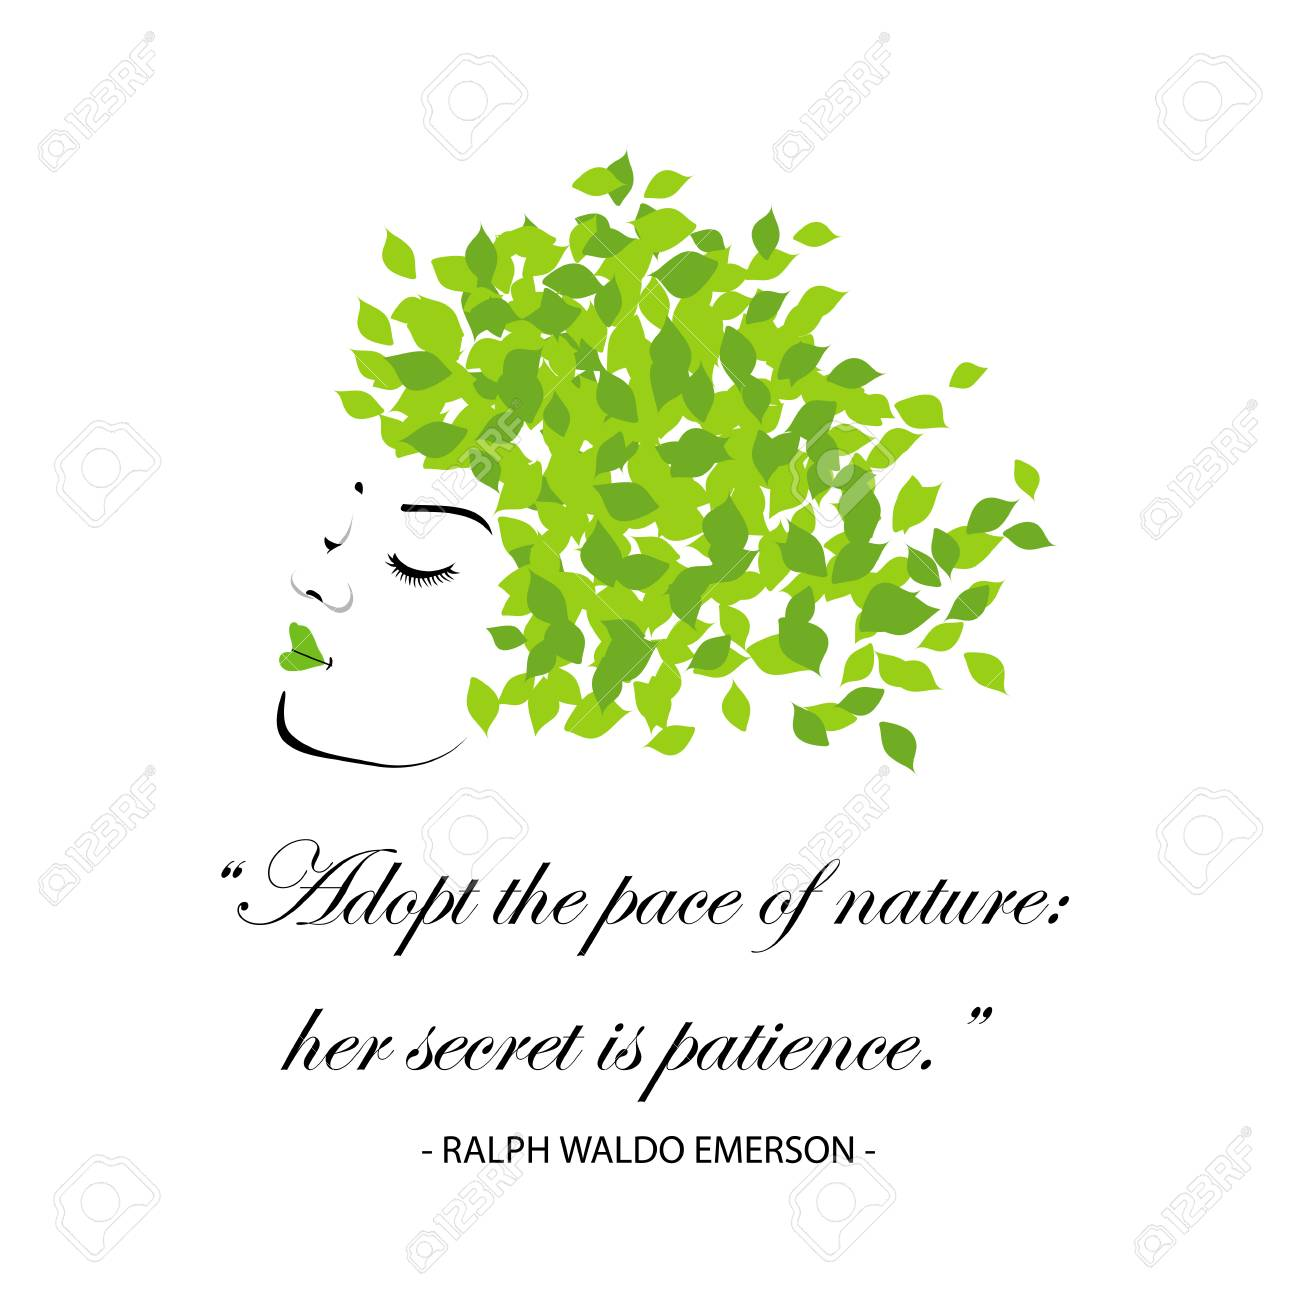 quotes for nature adopt the pace of nature her secret is